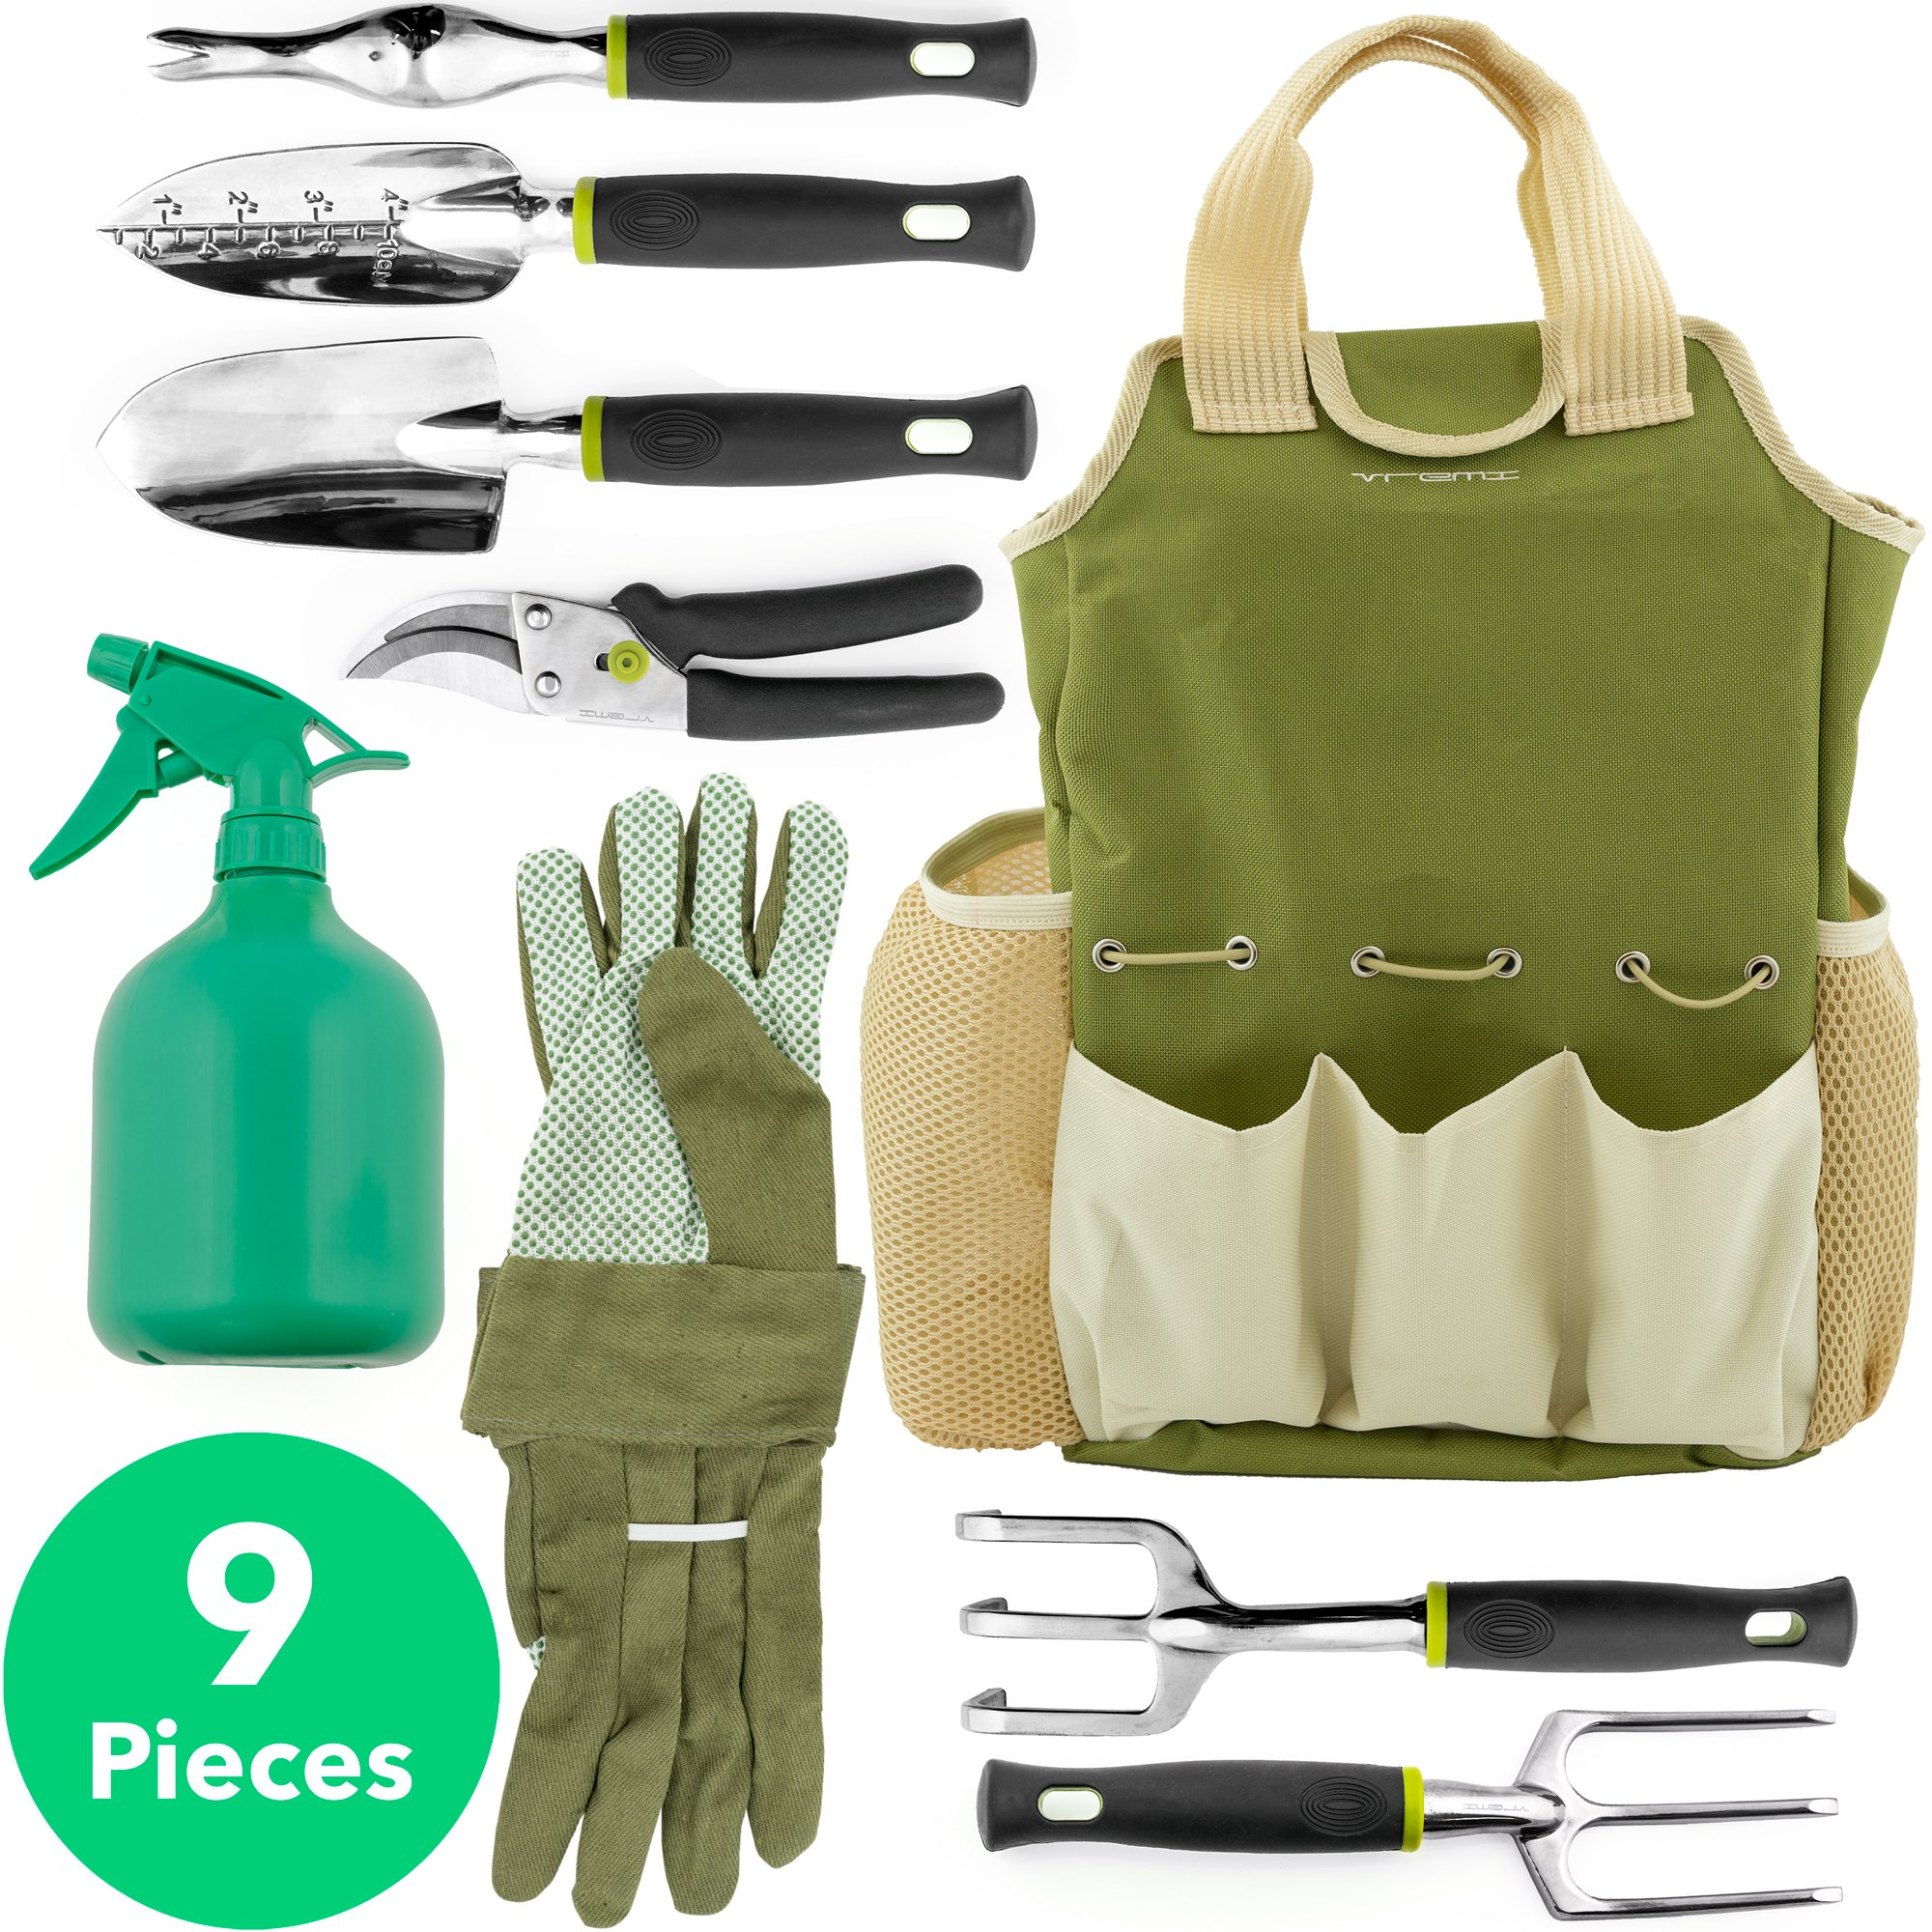 9 Piece Garden Tools Set Handy Gardening Kit With Gloves